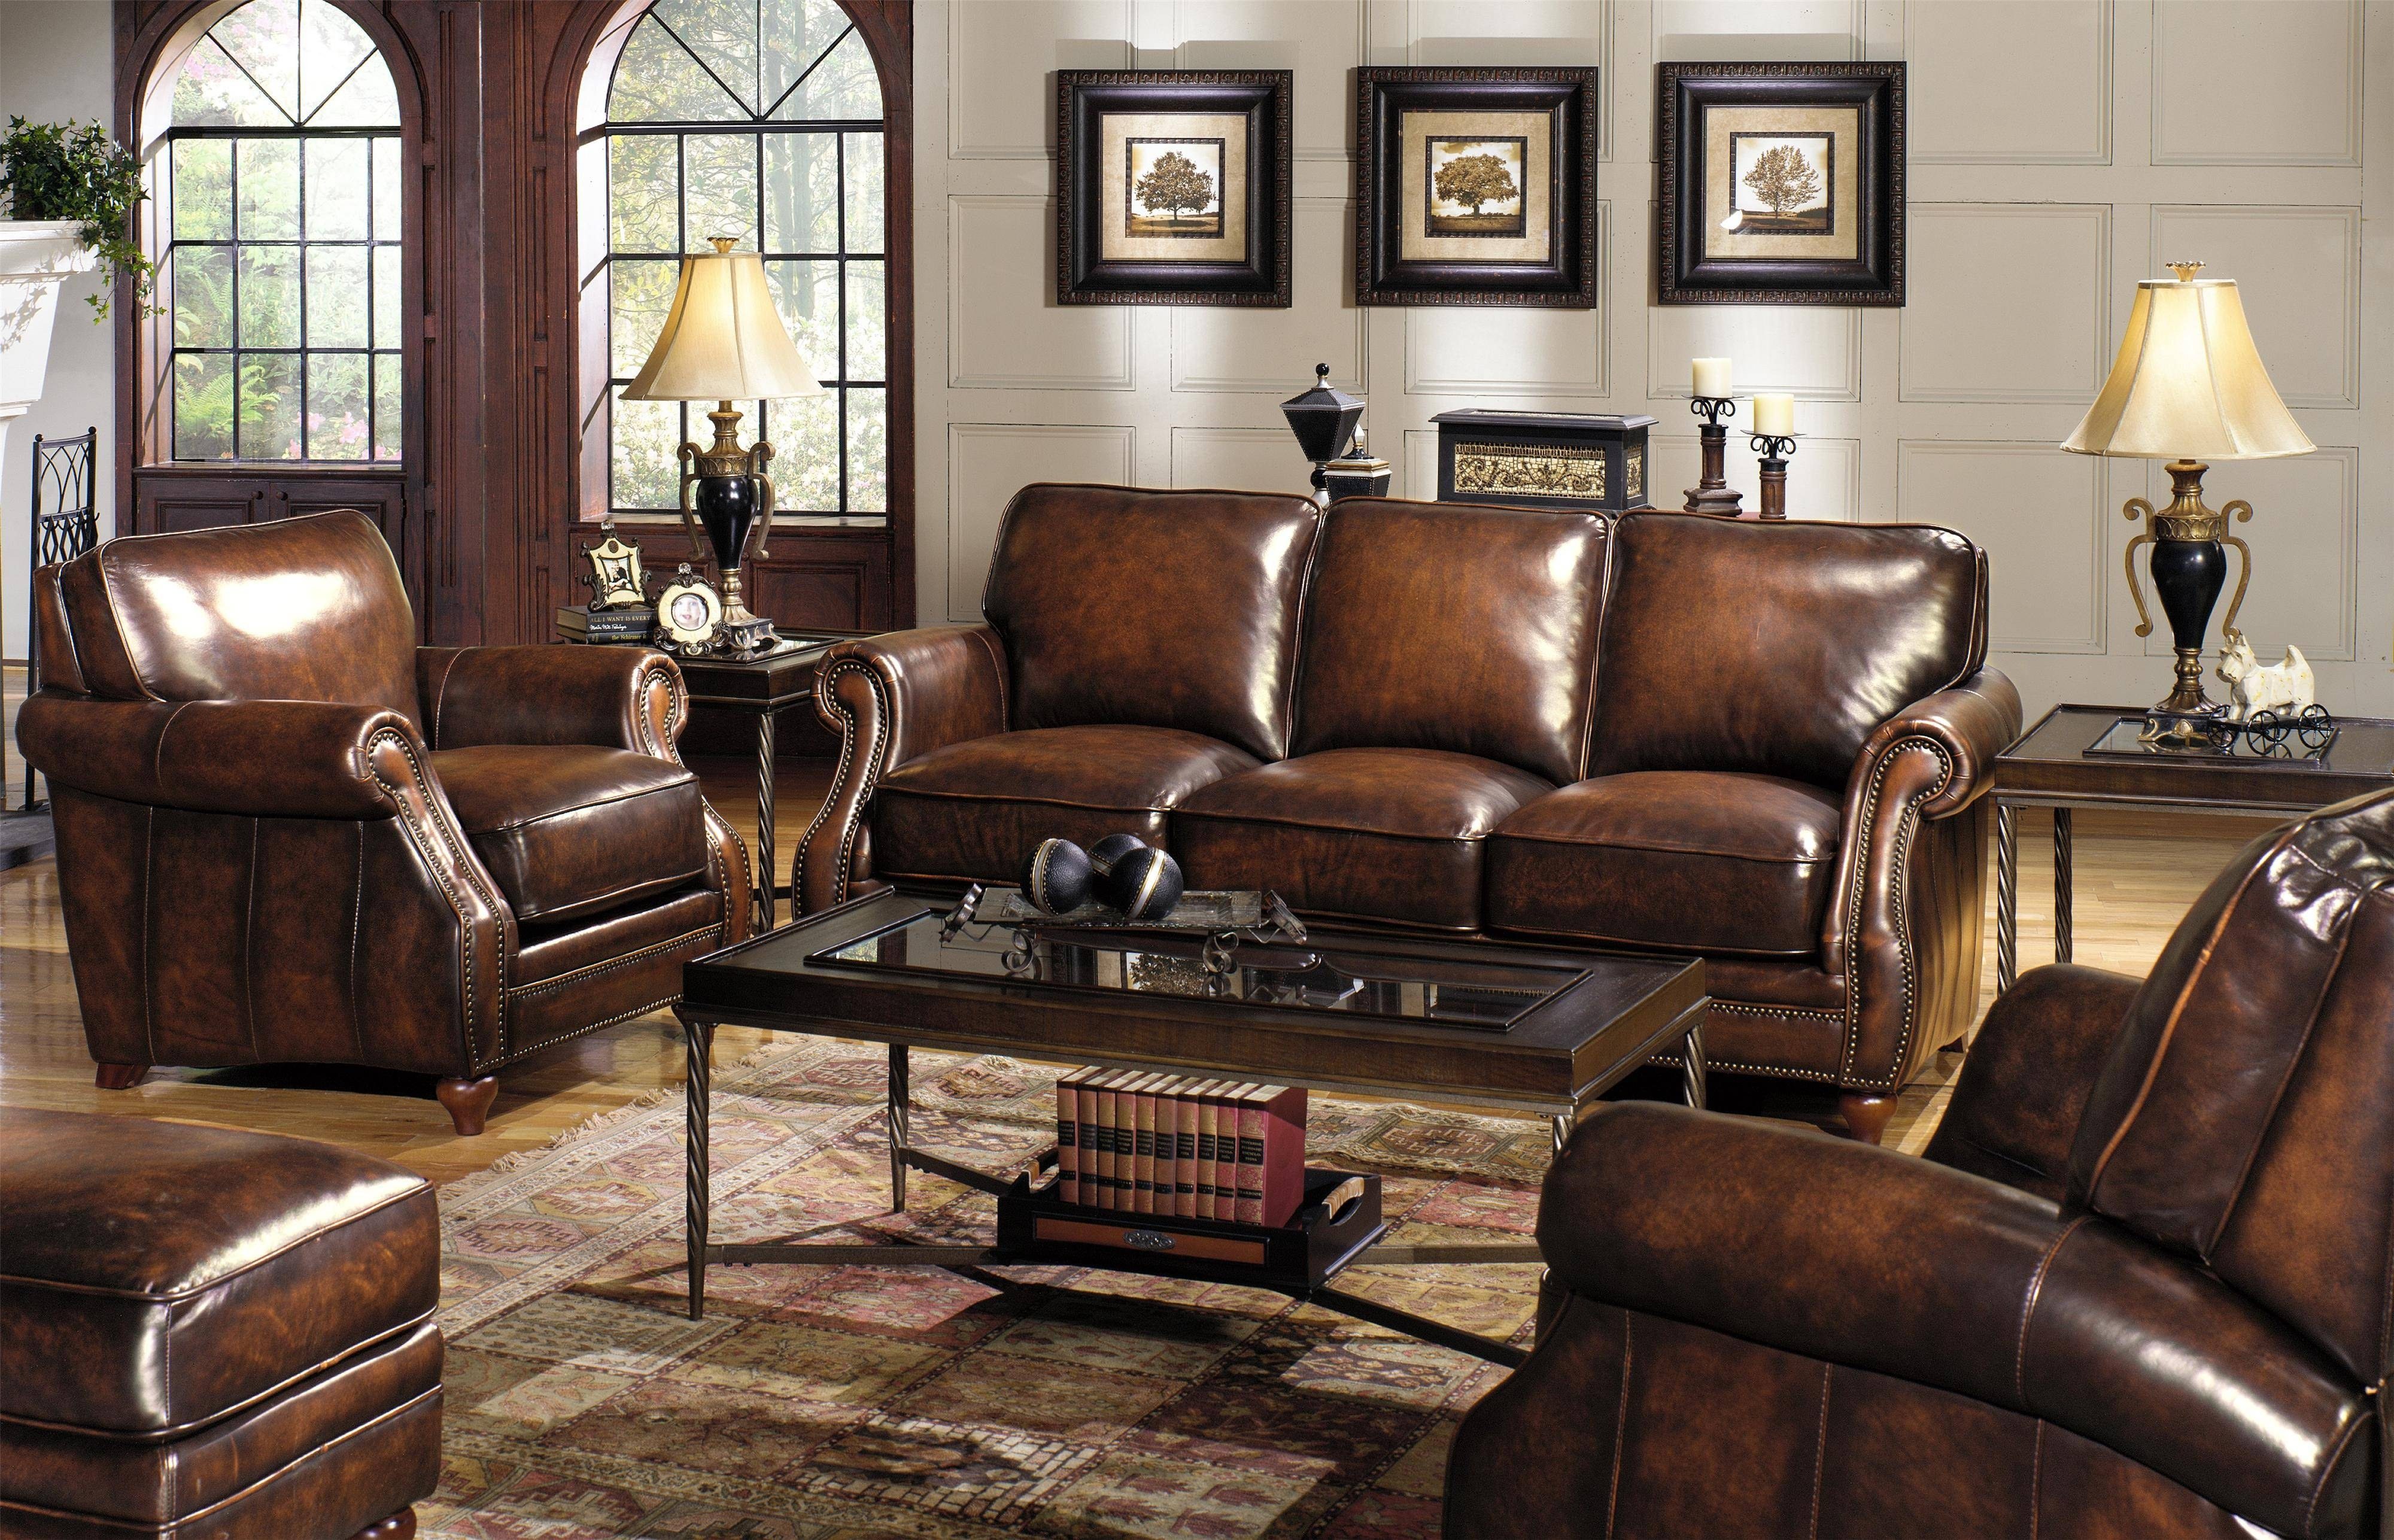 Traditional Leather Sofa With Rolled Arms And Nailhead Trim intended for Traditional Leather Couch (Image 22 of 30)